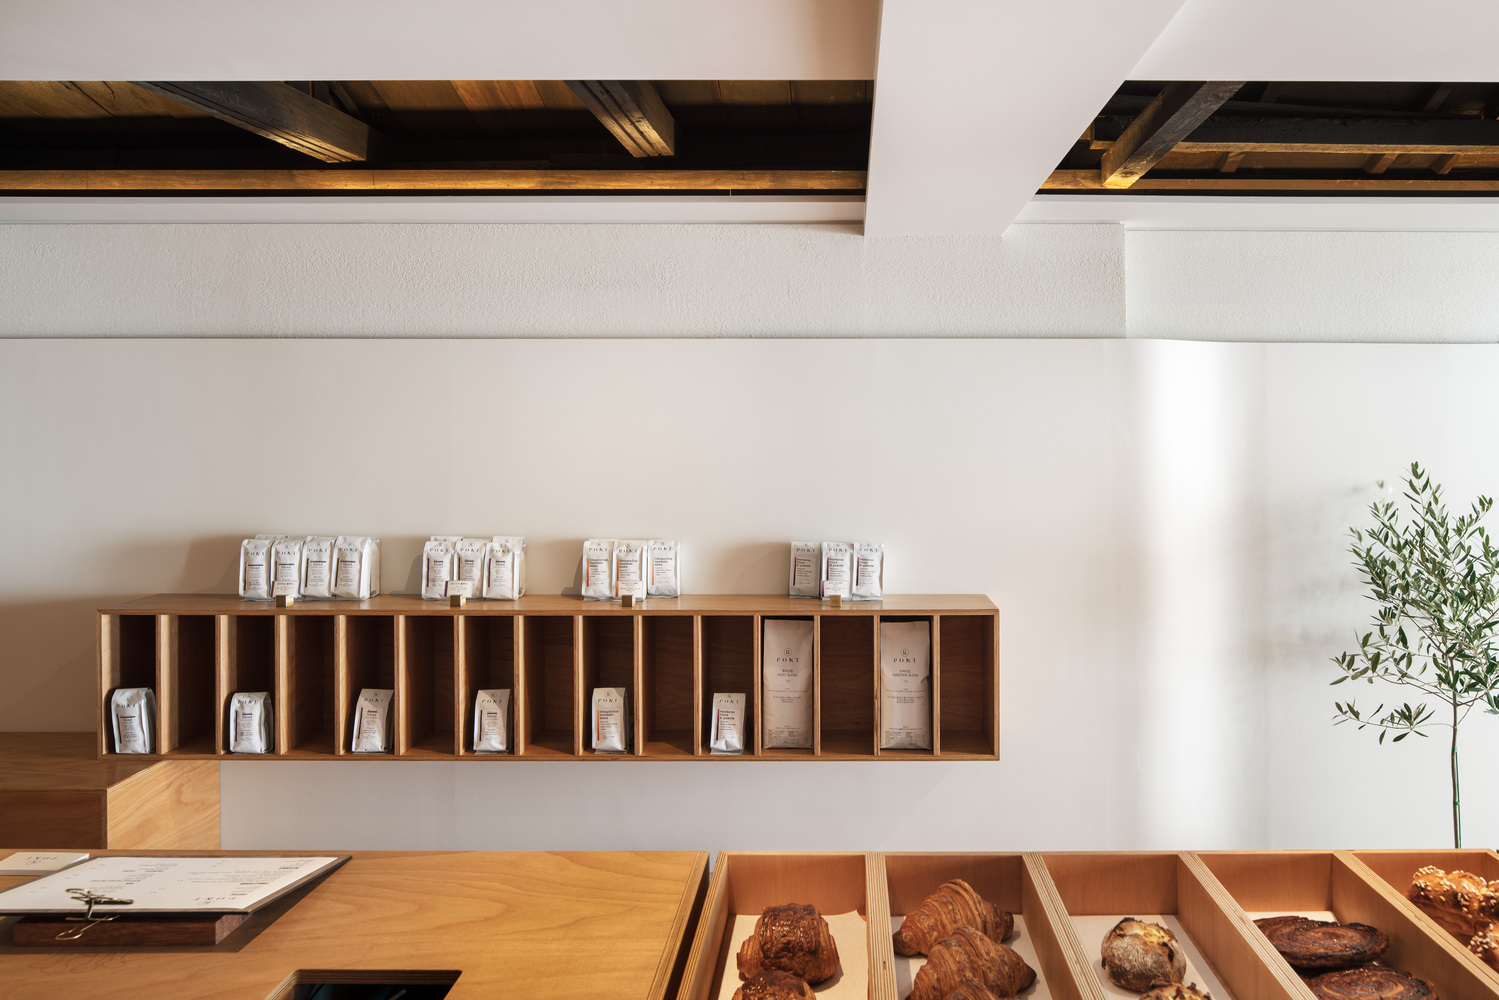 Seoul's PONT café is a railway office turned coffee shop